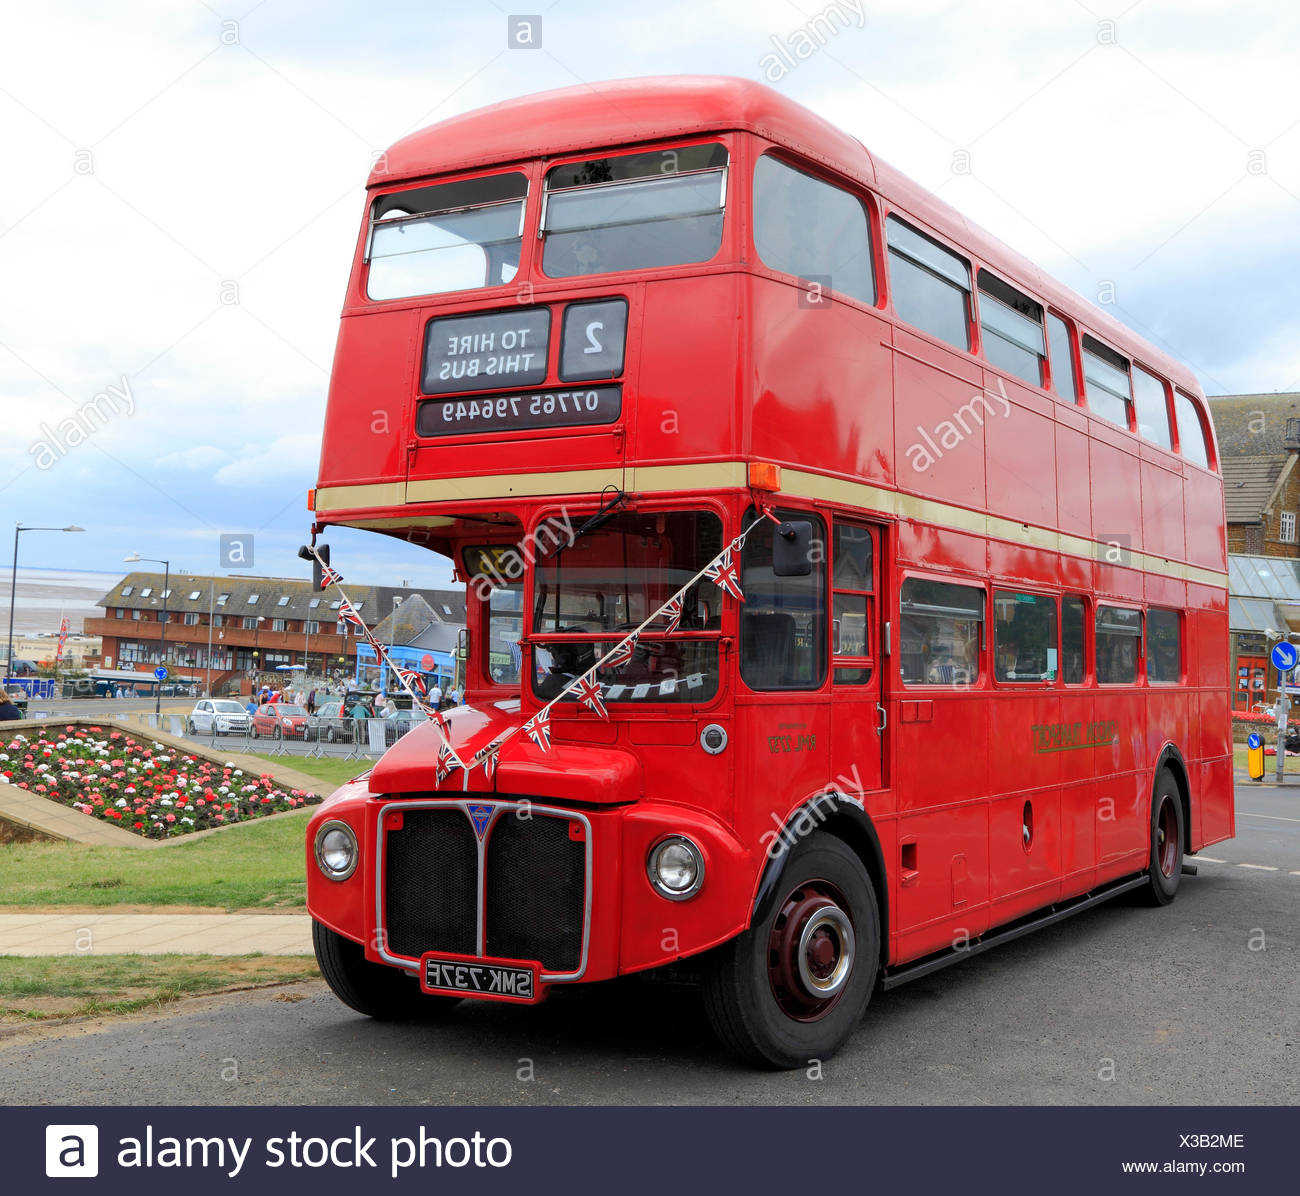 vintage, red, London Transport bus, Hunstanton, Norfolk, England, UK, tourist attraction - Stock Image